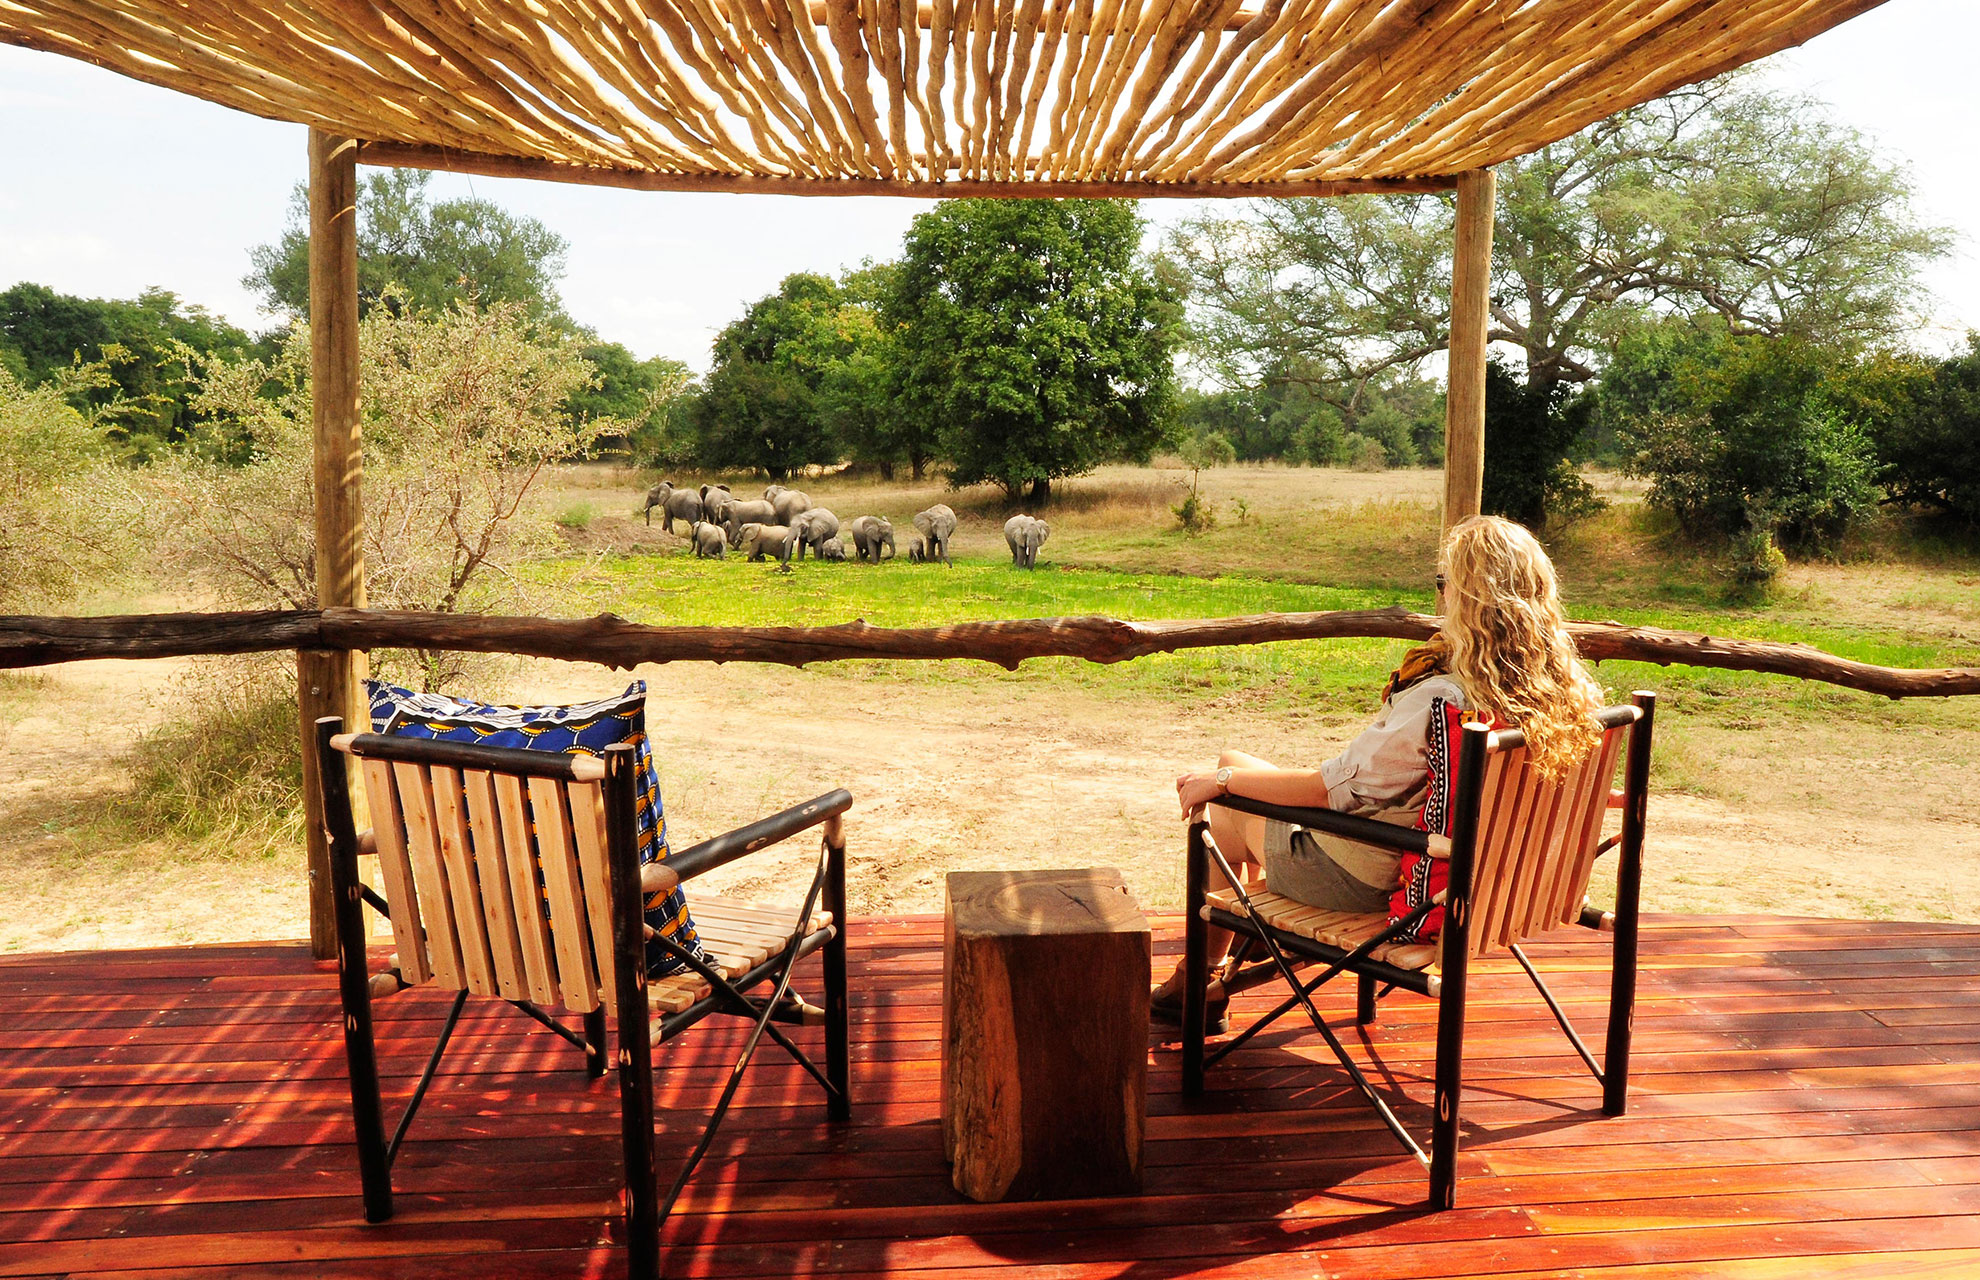 6.-THE-BUSHCAMP-COMPANY---Bilimungwe---raised-chalets-for-private-game-viewing